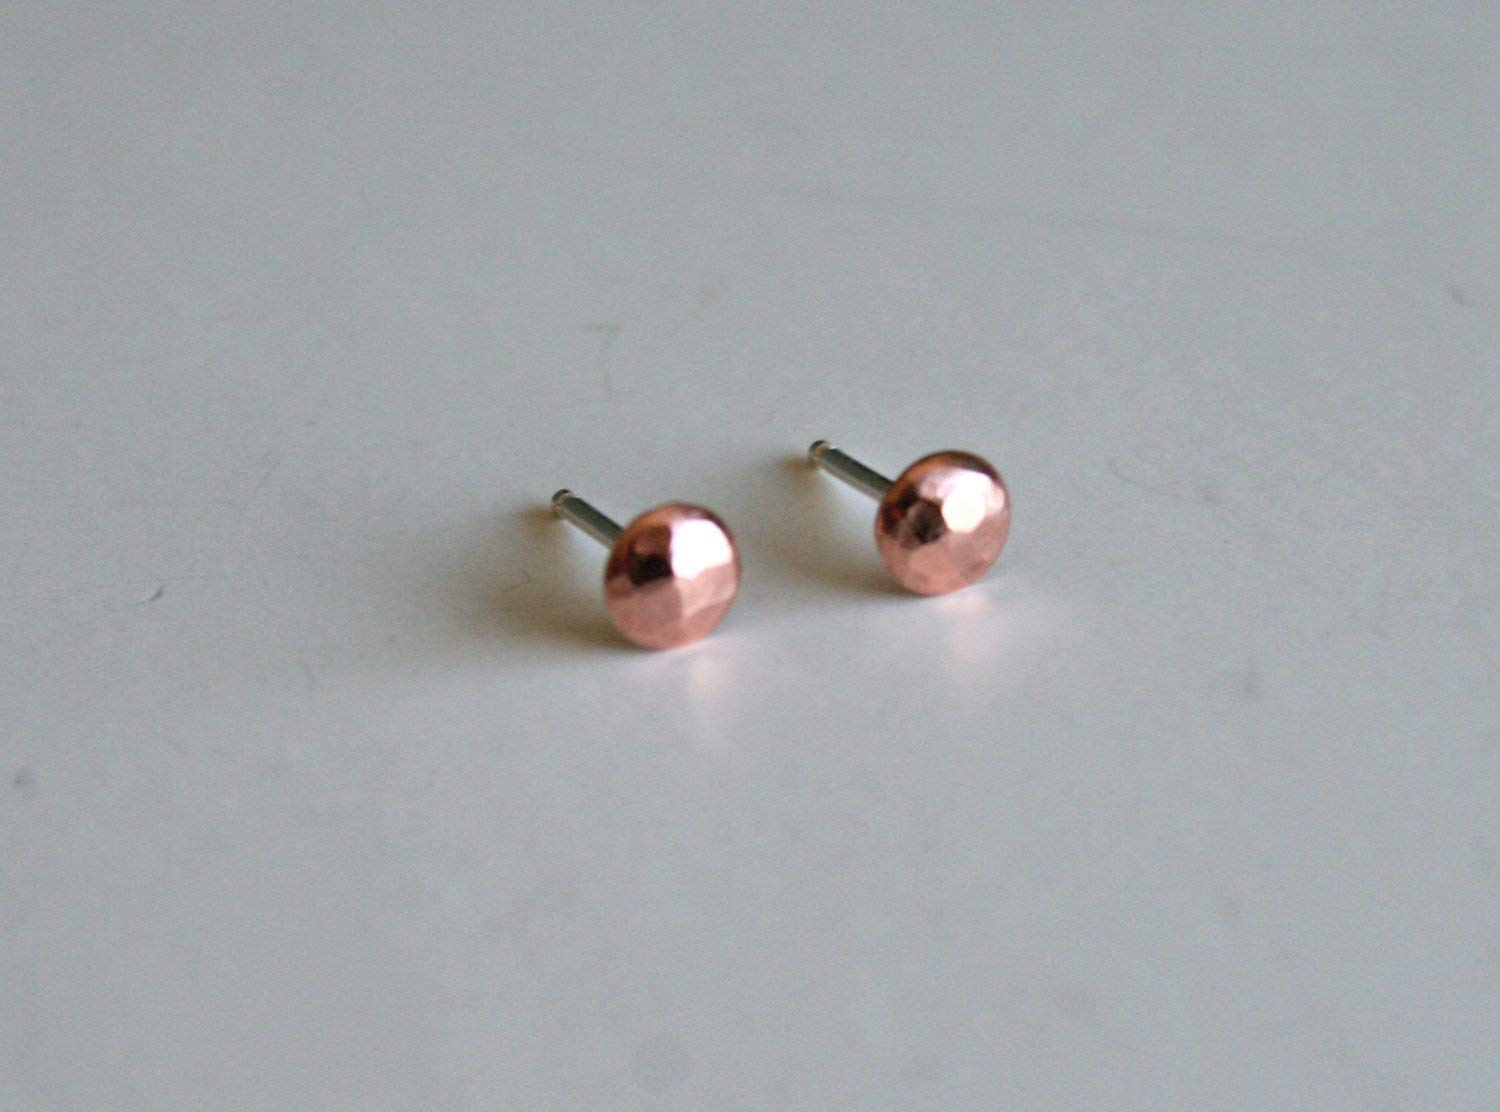 Simple Copper Pebble Earrings, Post Earrings, Stud Earrings, Silver and Copper Hammered, Small Earrings, Dot Earrings, Polished Earrings 4mm earrings, Rose Gold Color Earrings, Stud Earrings